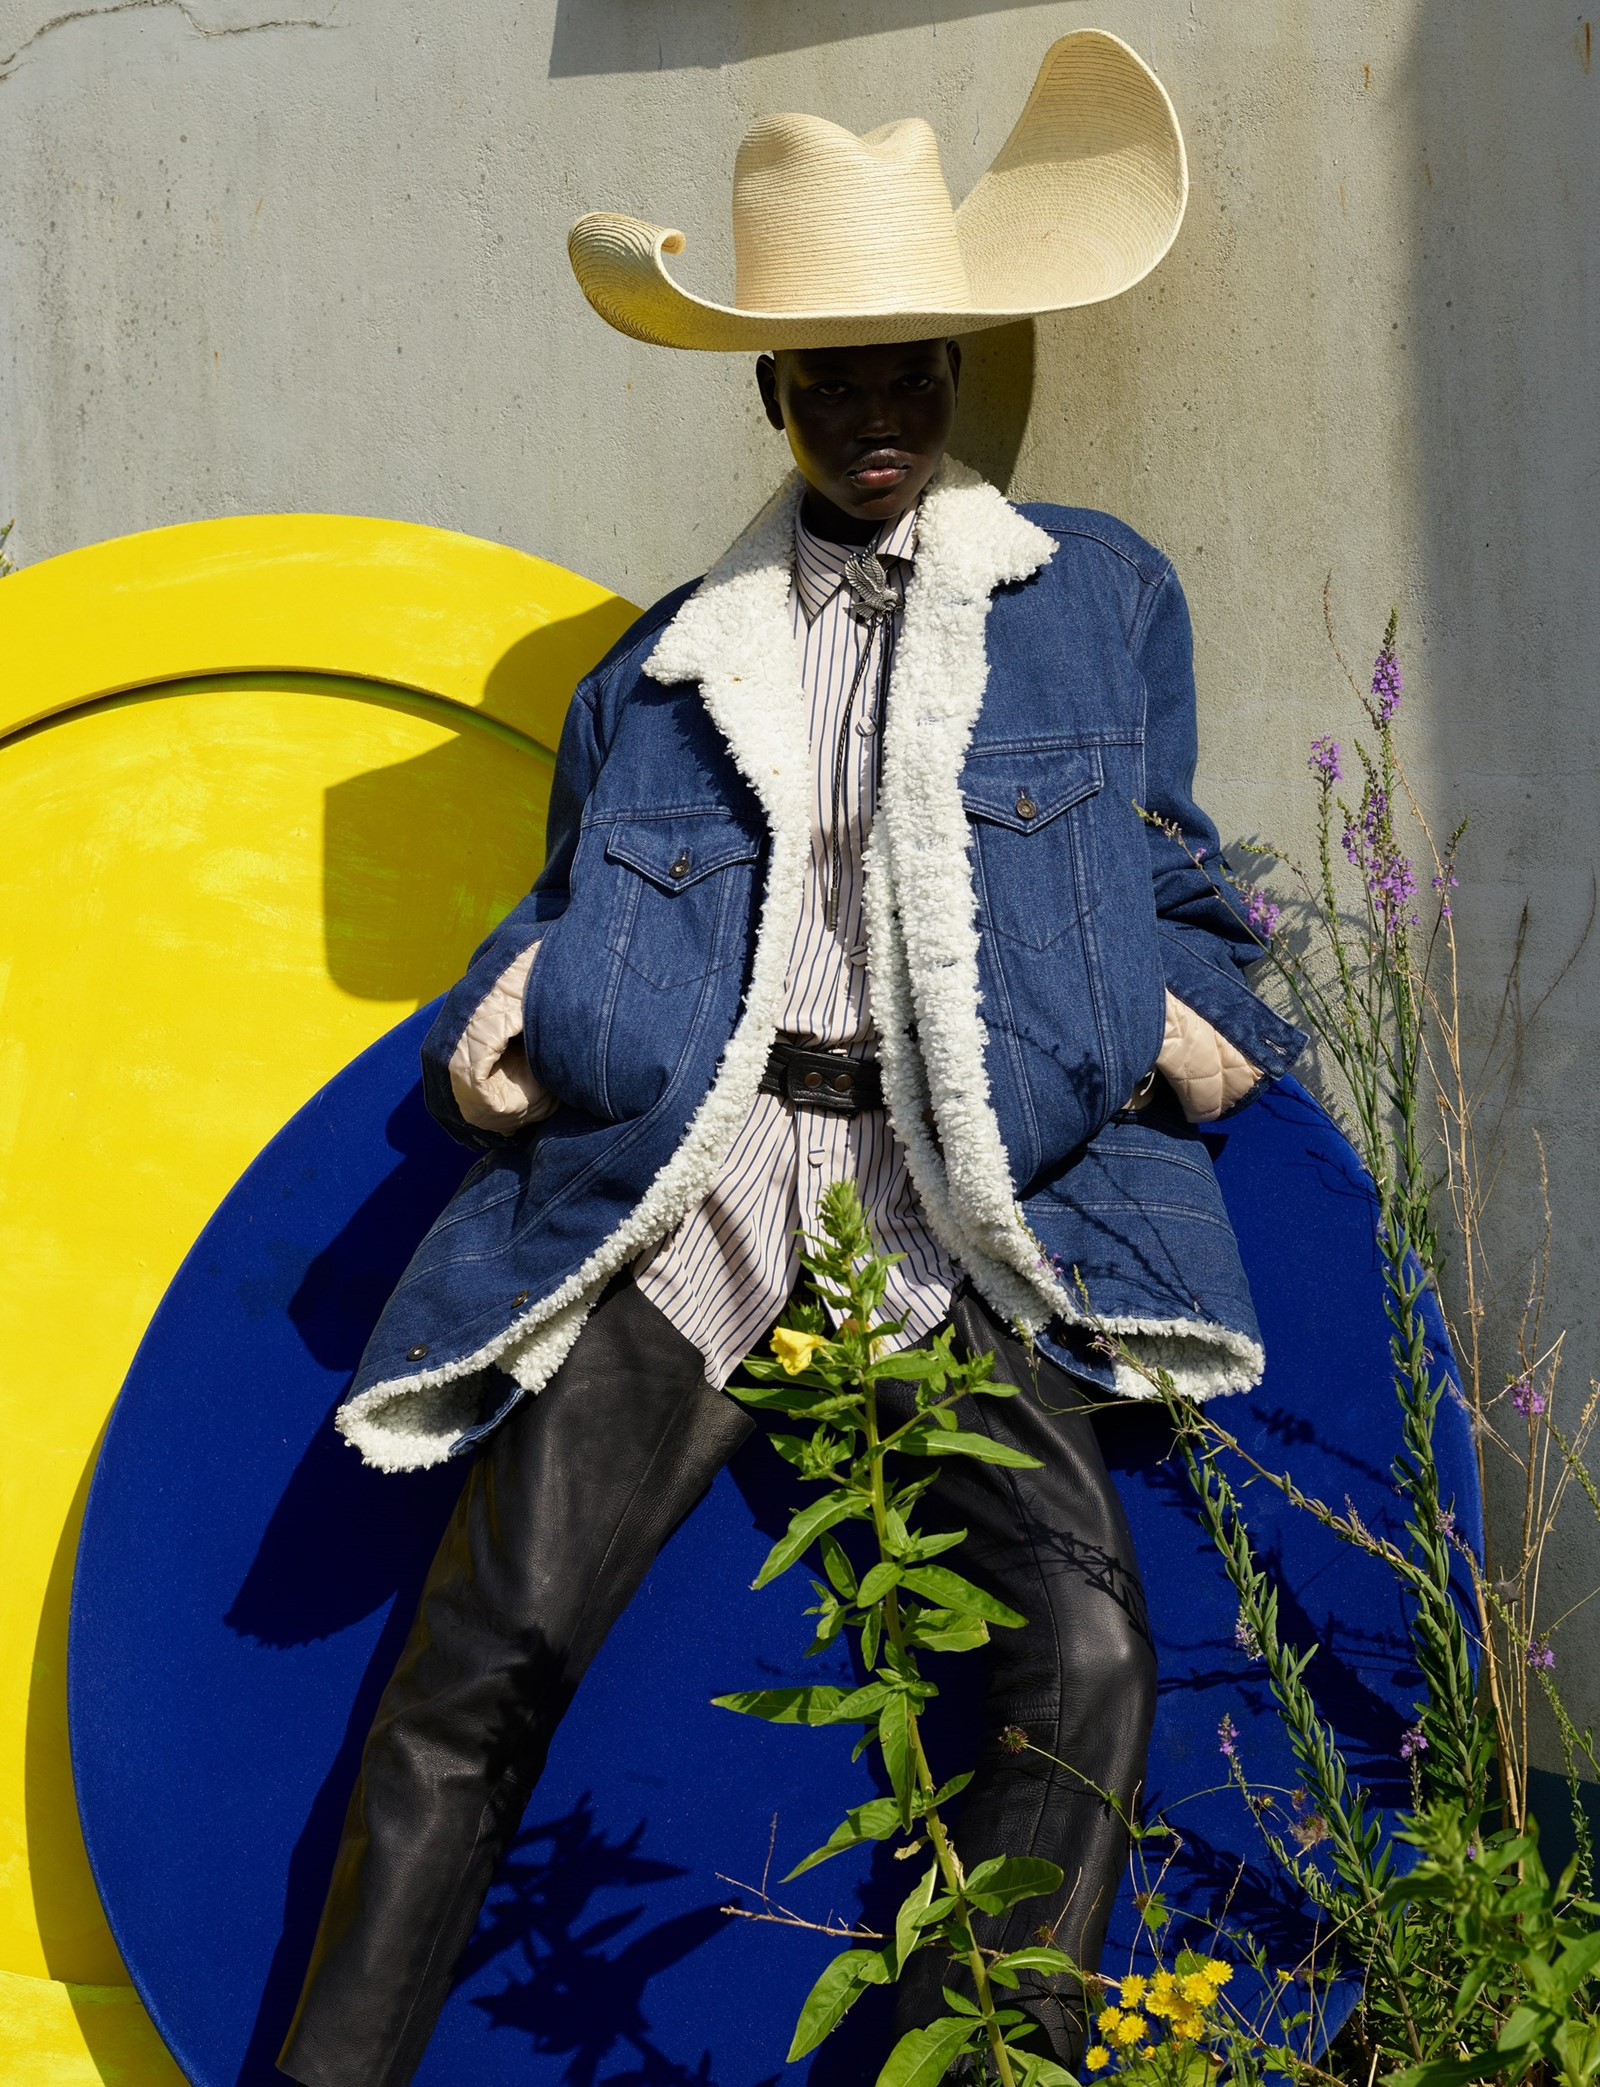 Shearling jacket Y/Project, striped cotton shirt Gucci, leather chaps Angharad Merrey for Savannah, warped palm leaf sombrero Melissa Eakin, leather bolo tie Cenci. Adut Akech by Vivianne Sassen for Dazed Autumn 2019.